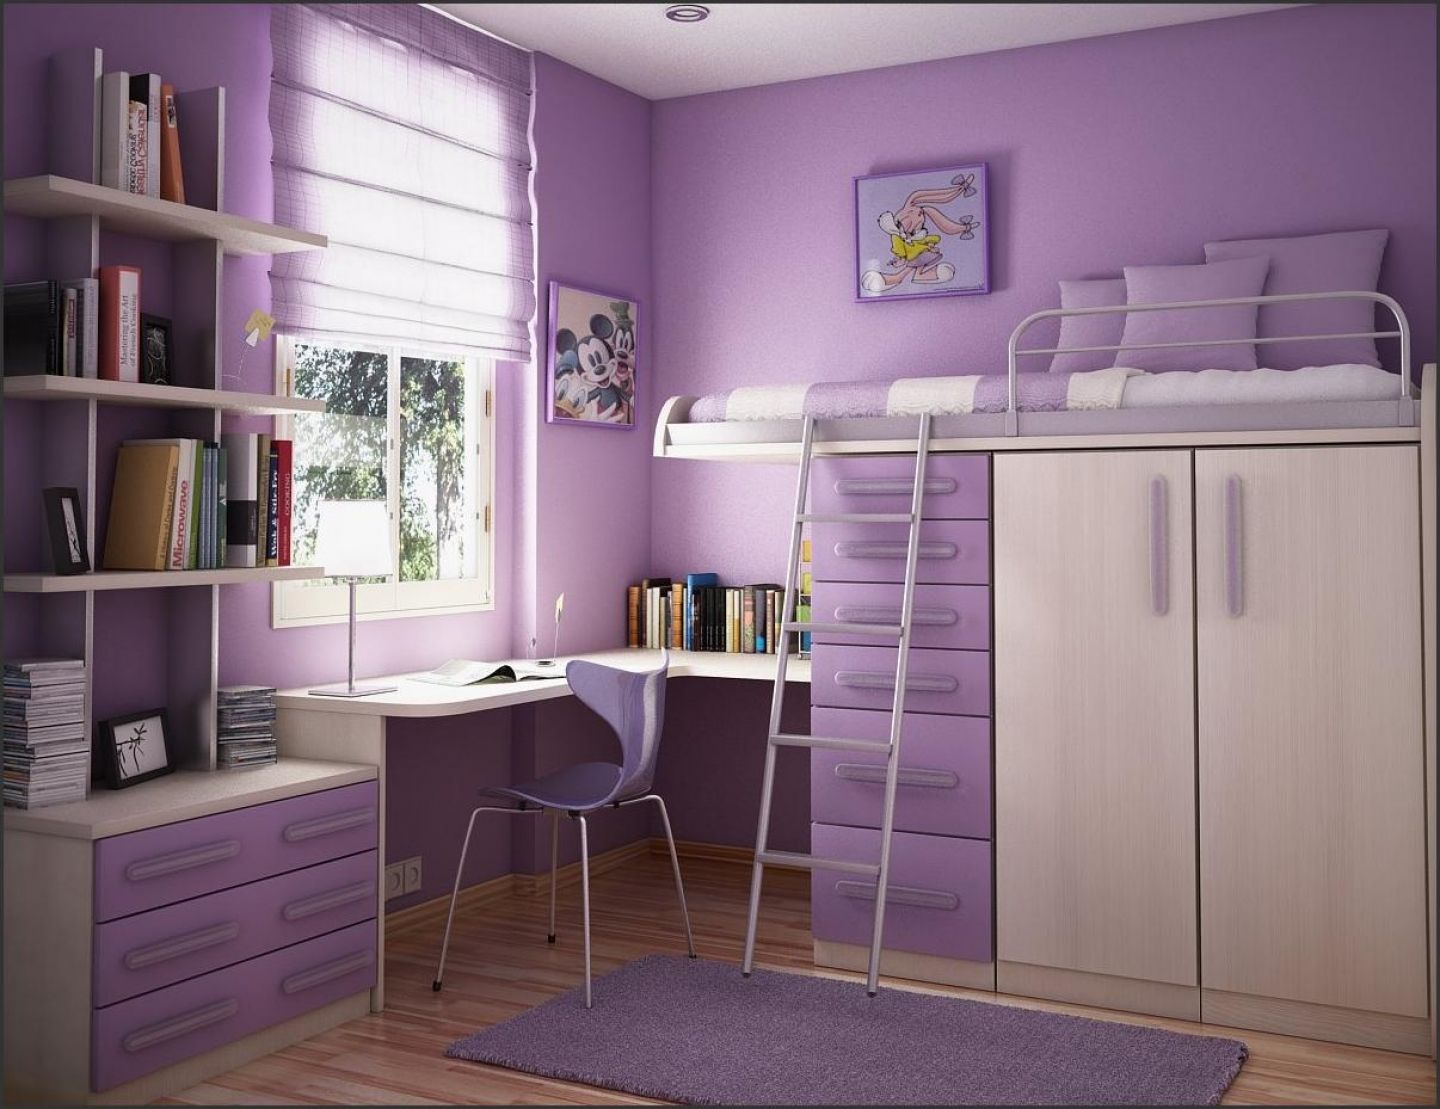 teen girl bedroom decorating ideas 06 13 1403 - Teenage Girl Bedroom Decorating Ideas